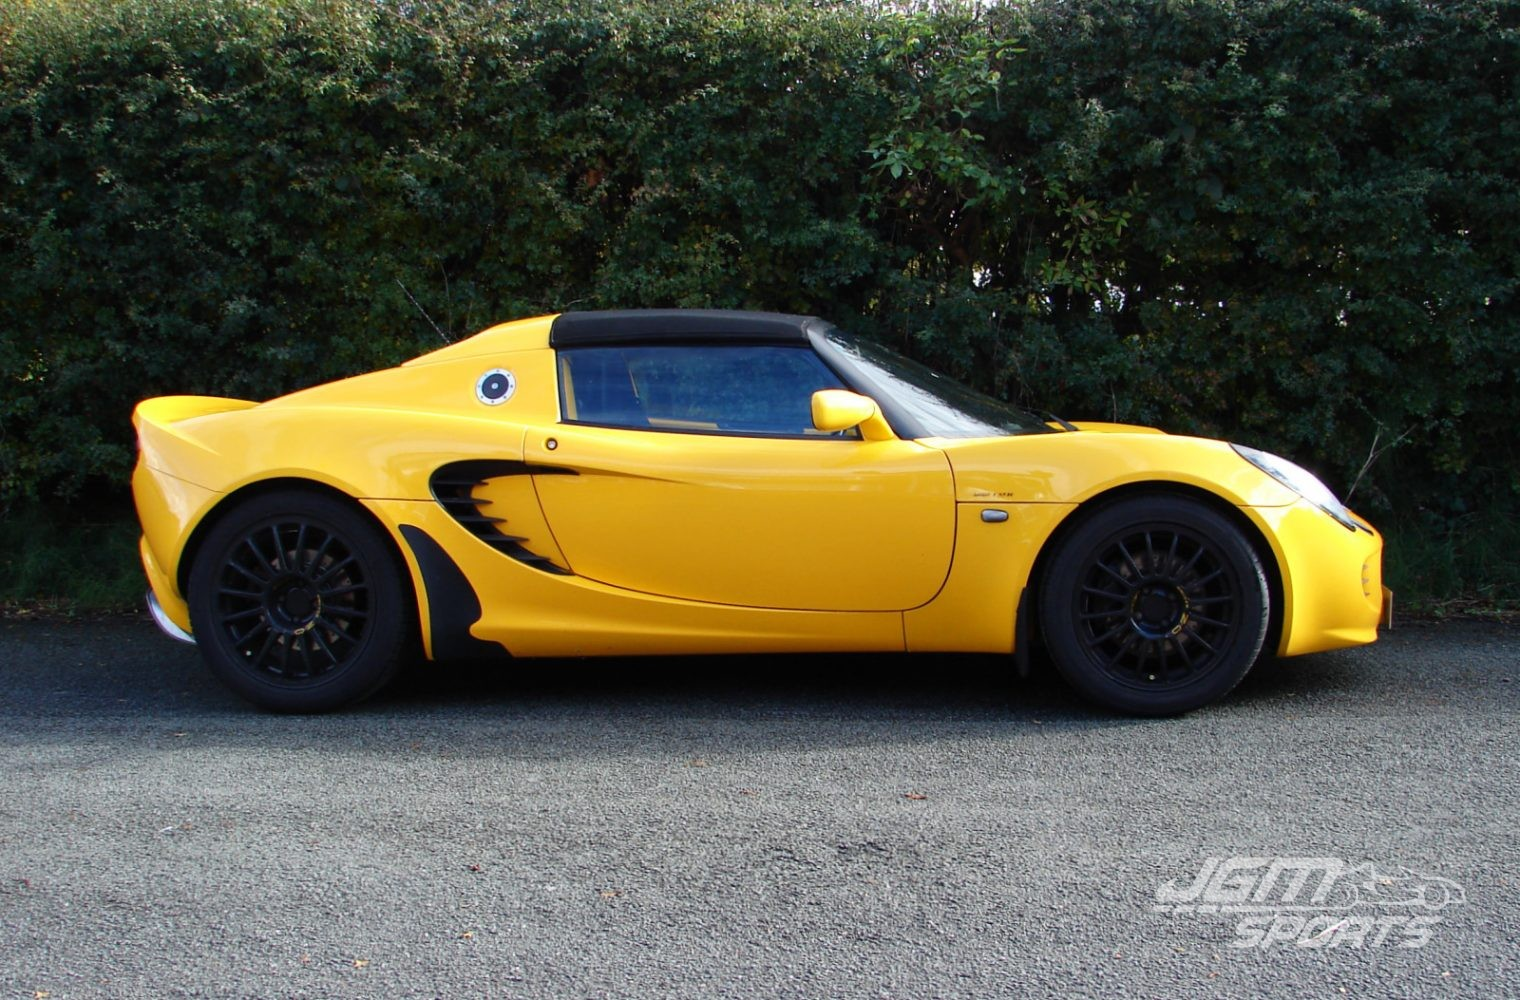 Cars for sale jgmsports sold 2004 s2 lotus elise 135r saffron yellow very rare no 110125 vanachro Images